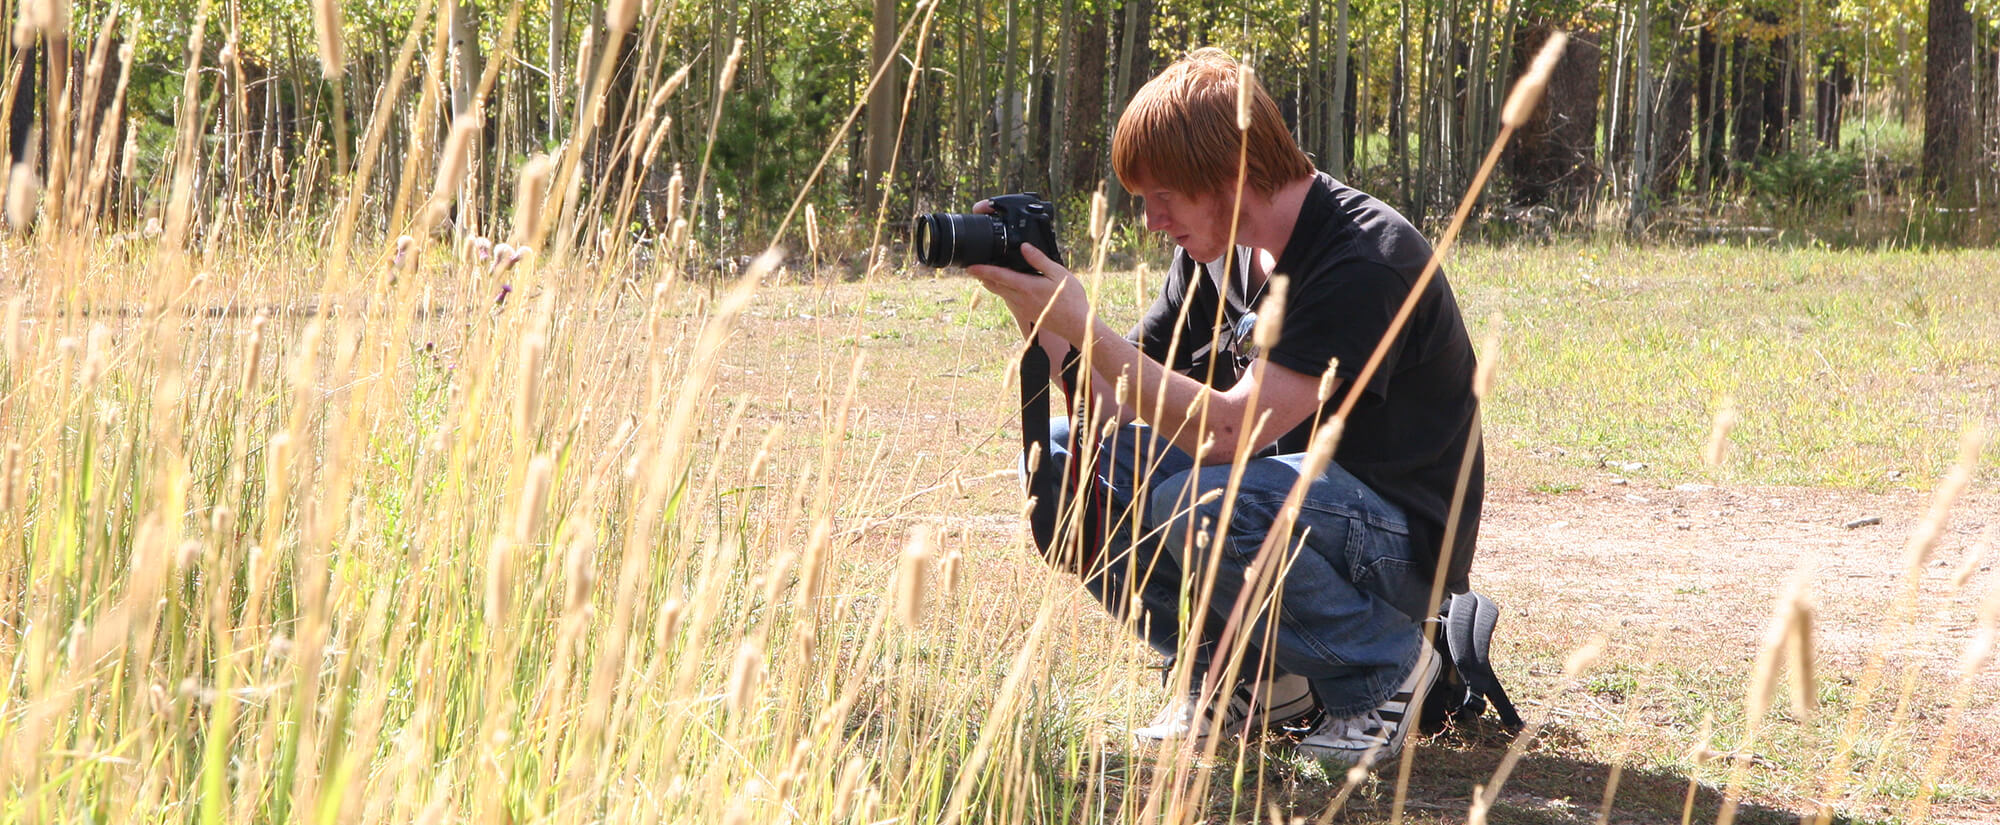 Student holding a DSLR camera crouched in tall grass on top of a mountain.